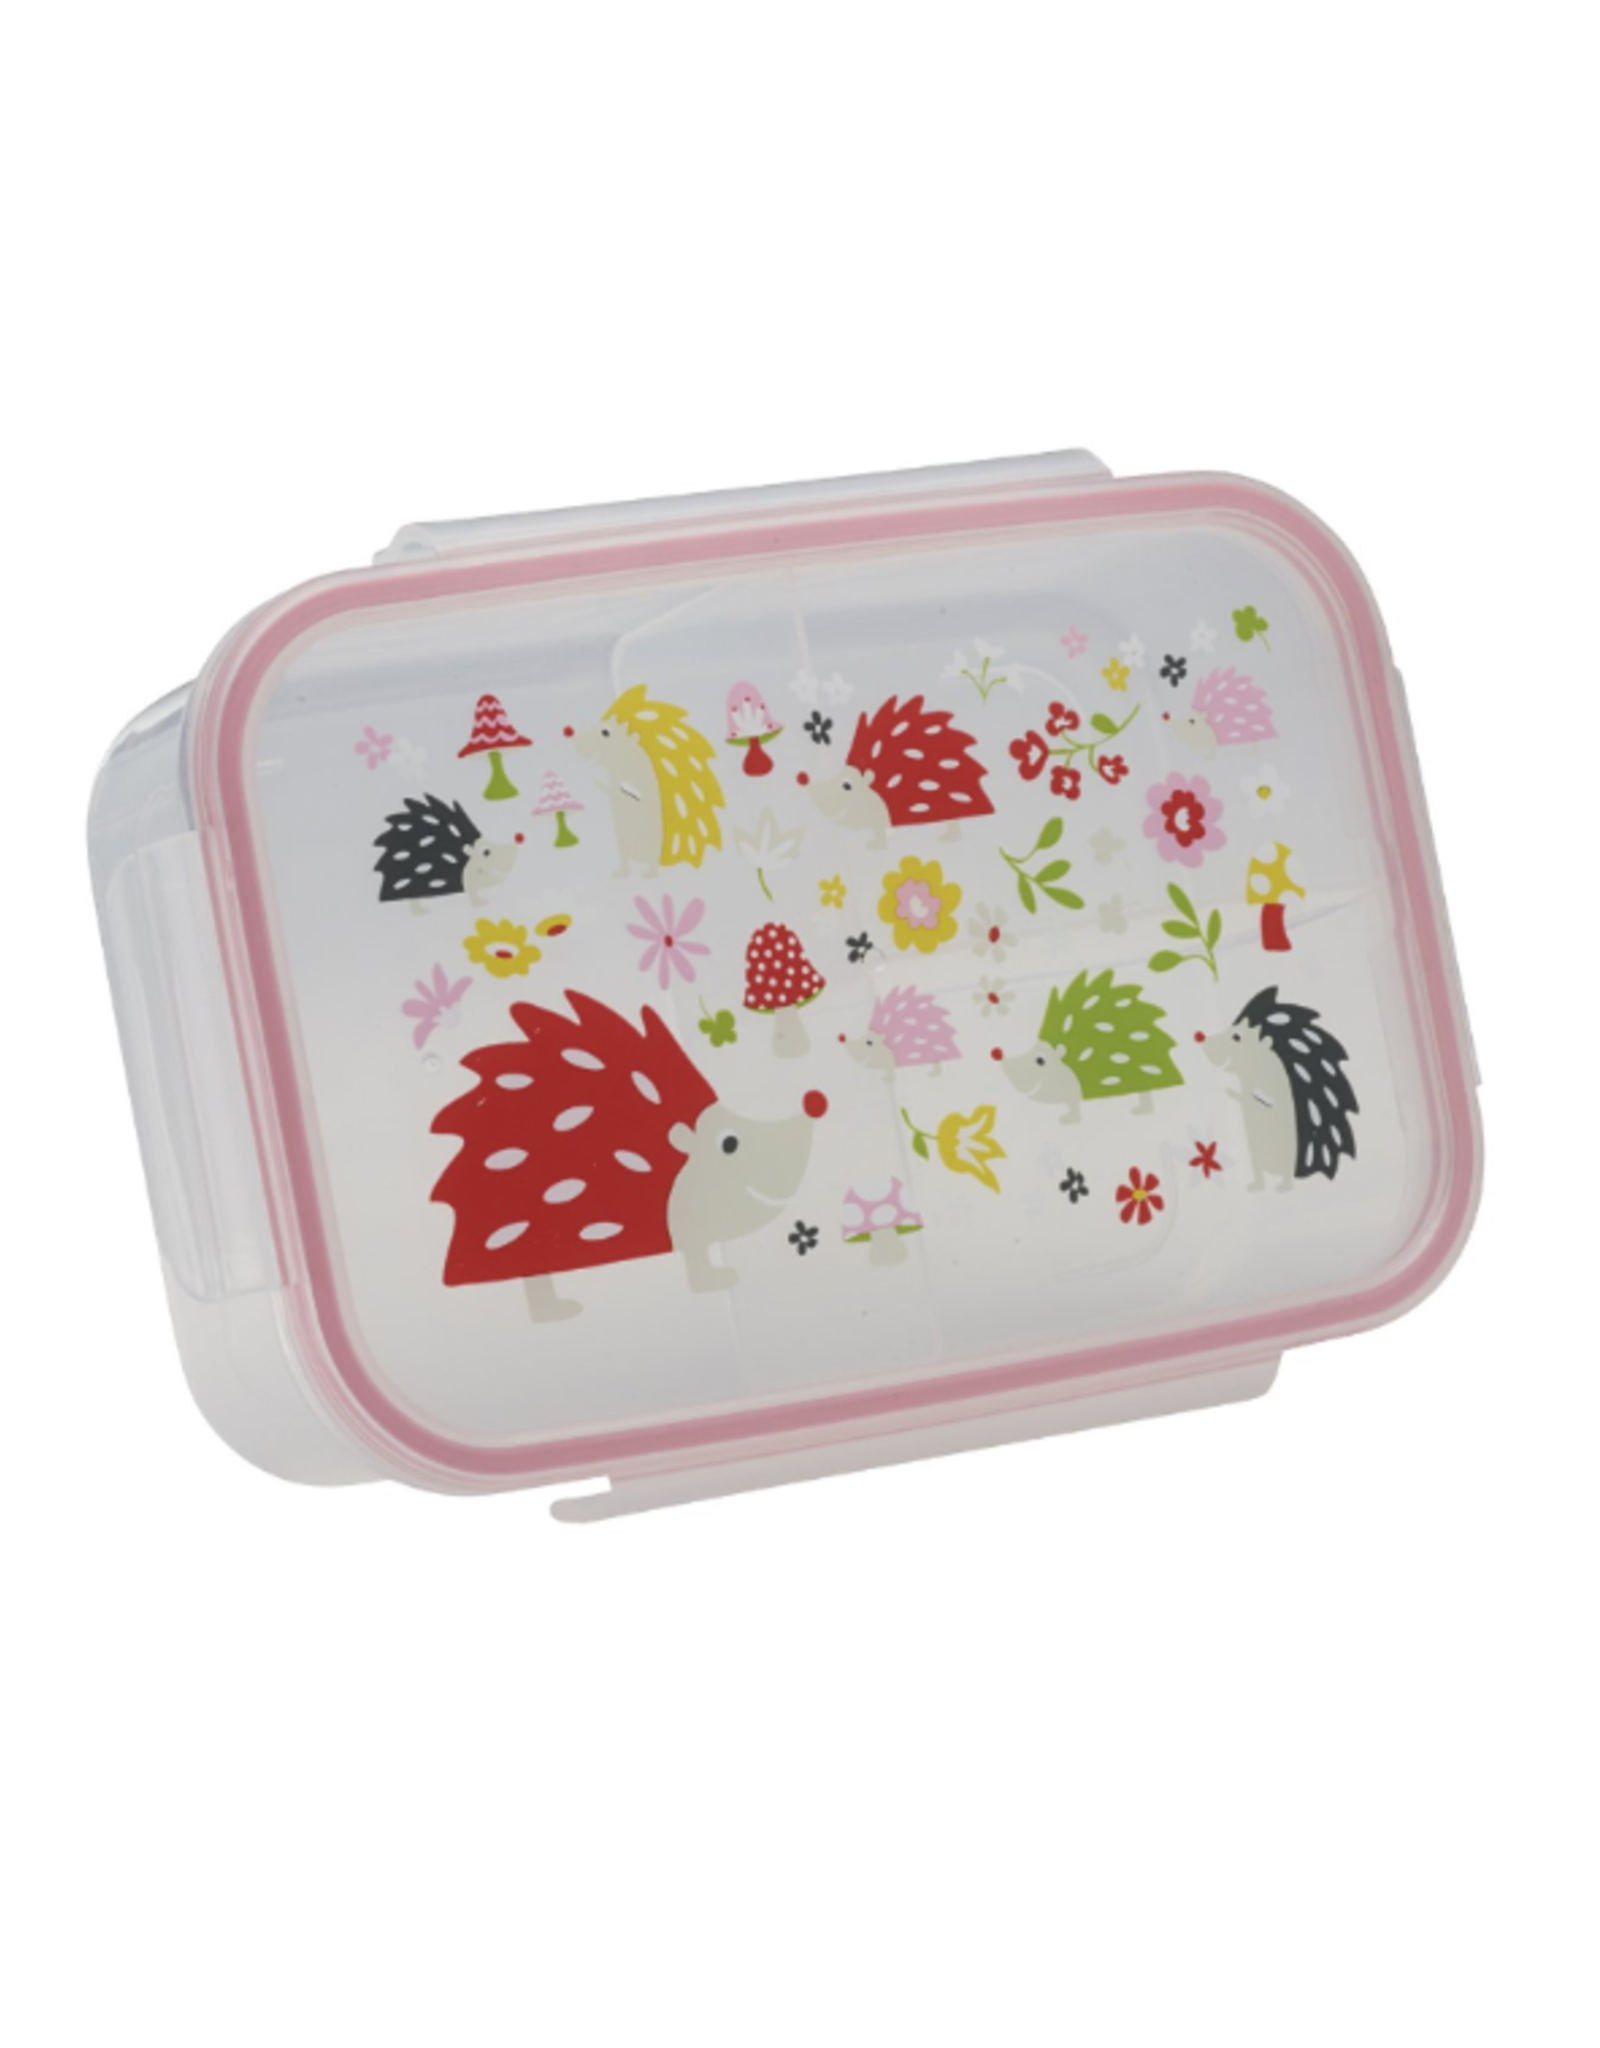 ORE Originals Good Lunch Bento Box Hedgehog